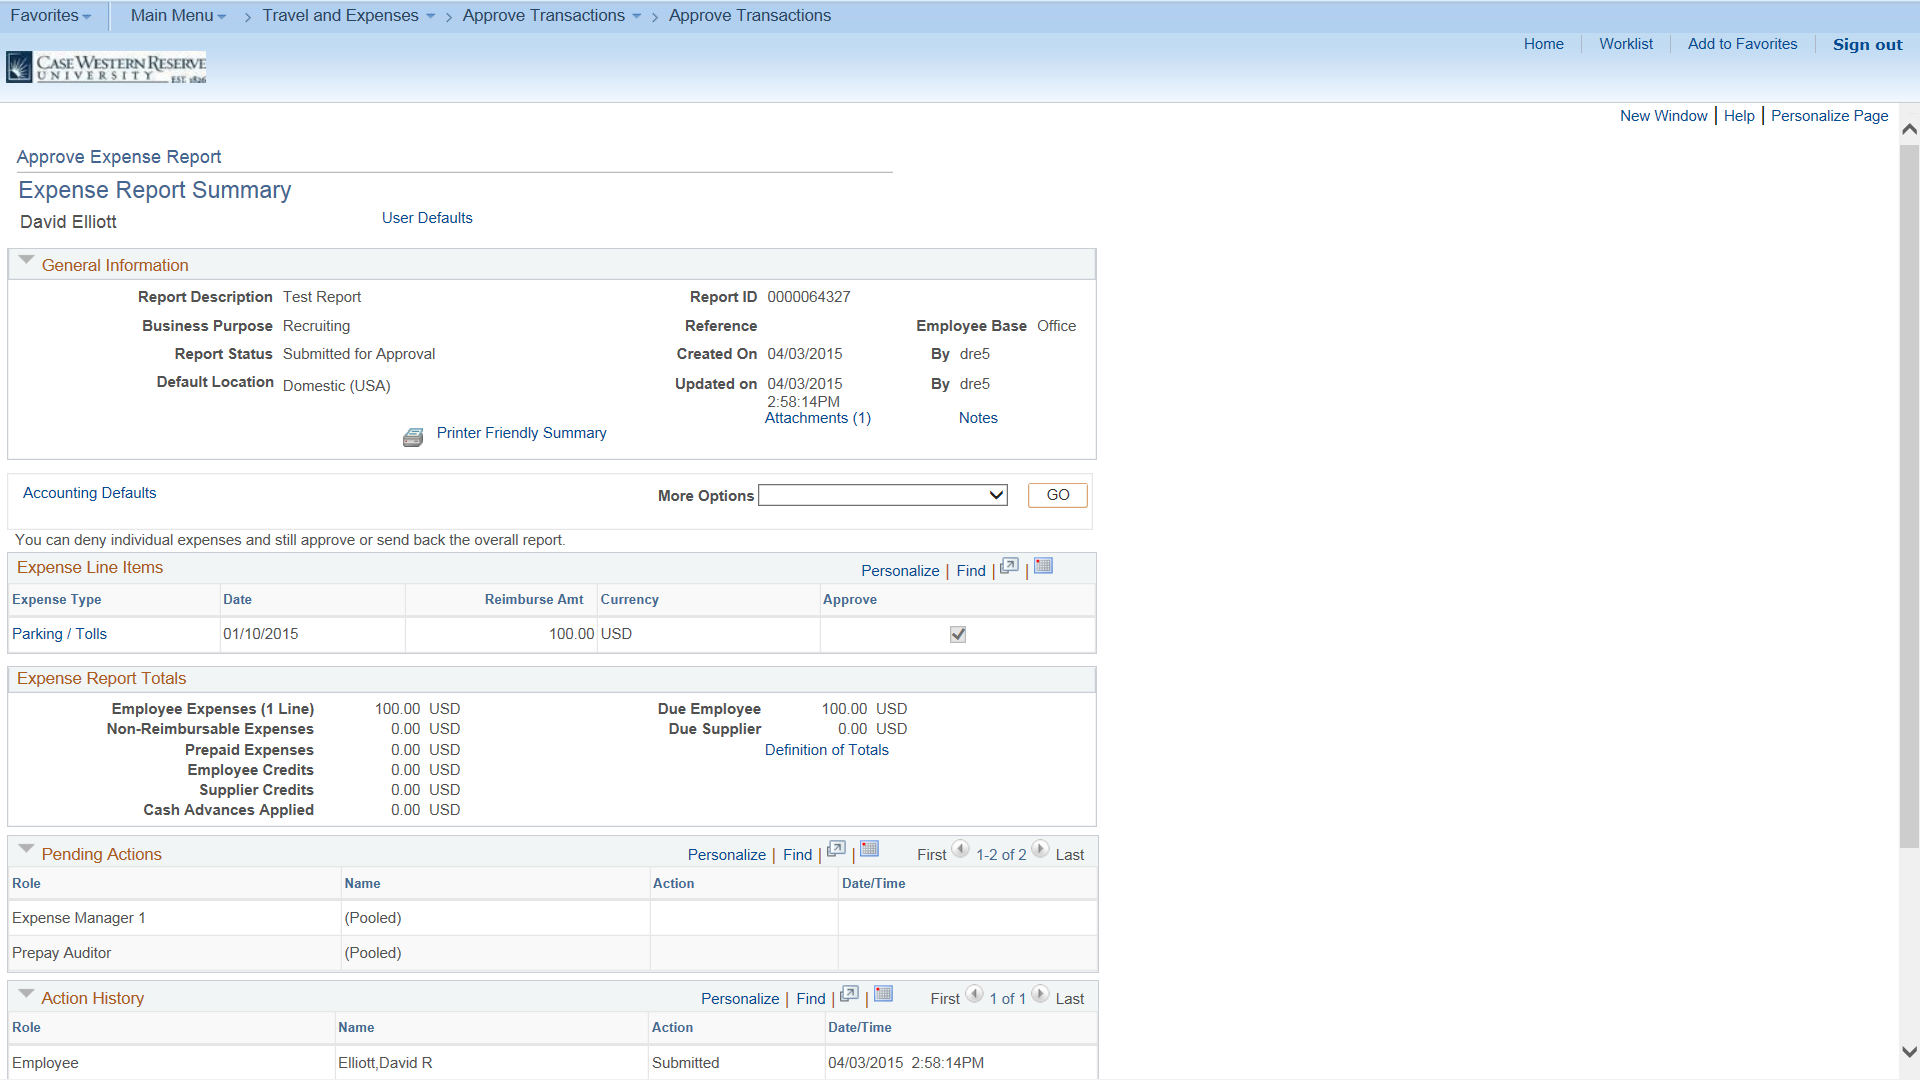 Screenshot of full expense report summary